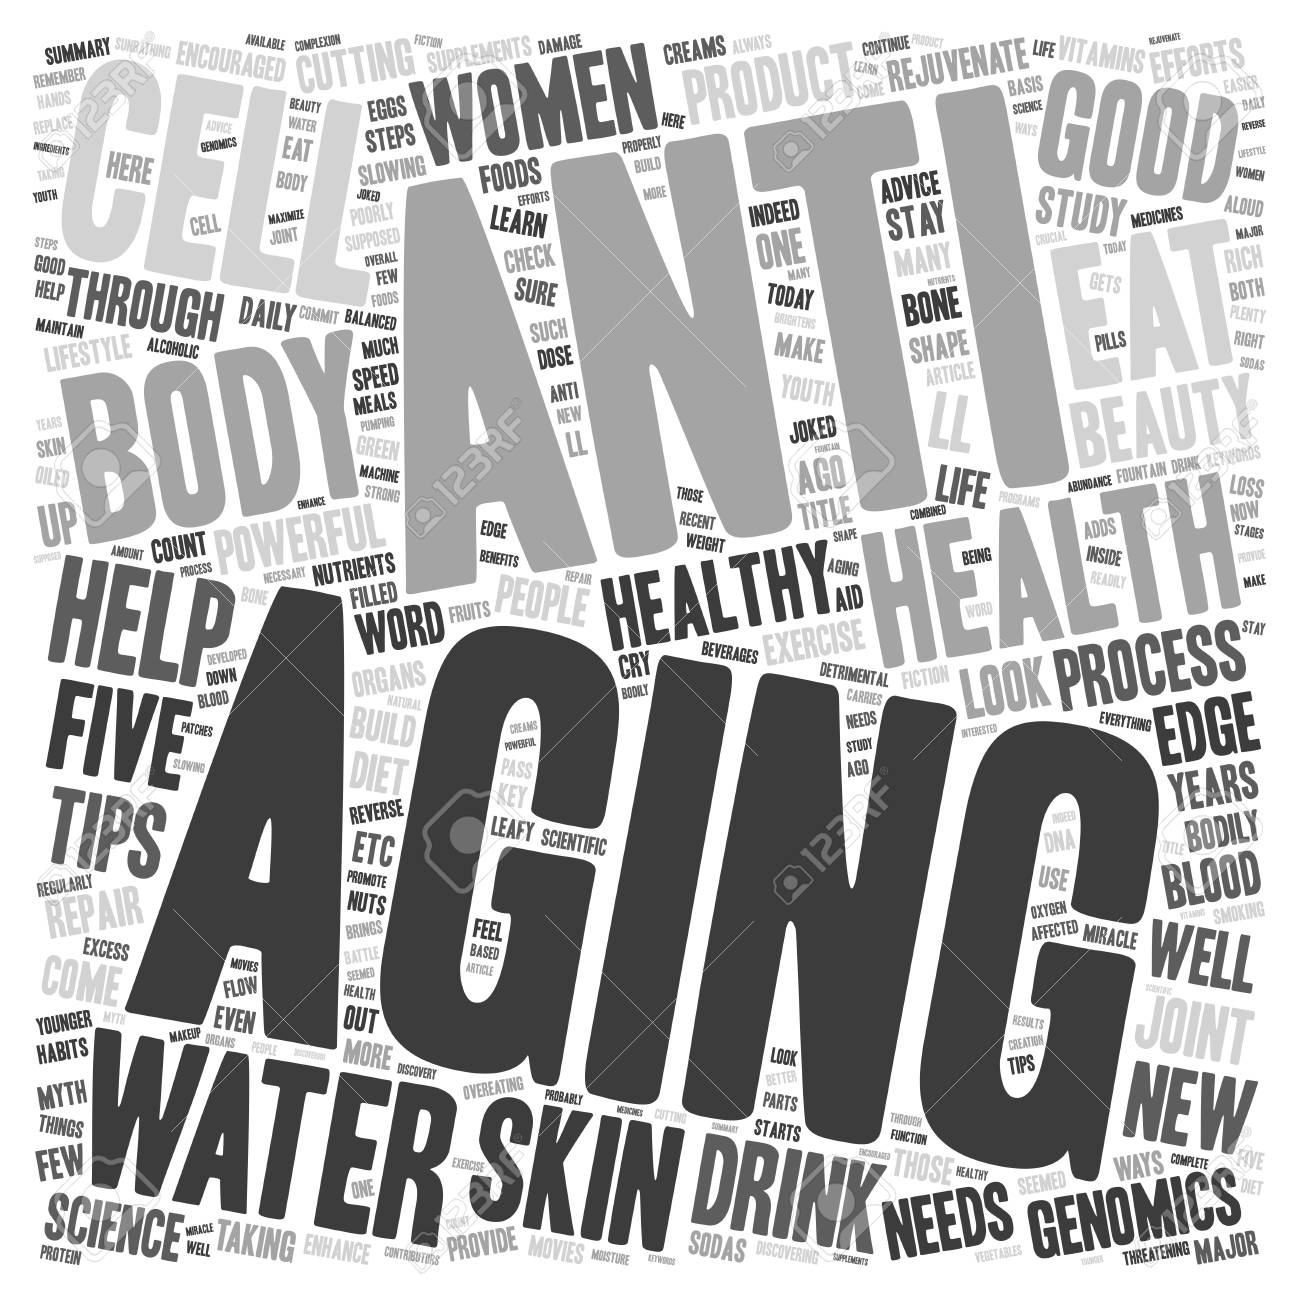 Womena s Health Advice Five Powerful Anti aging Tips text background wordcloud concept